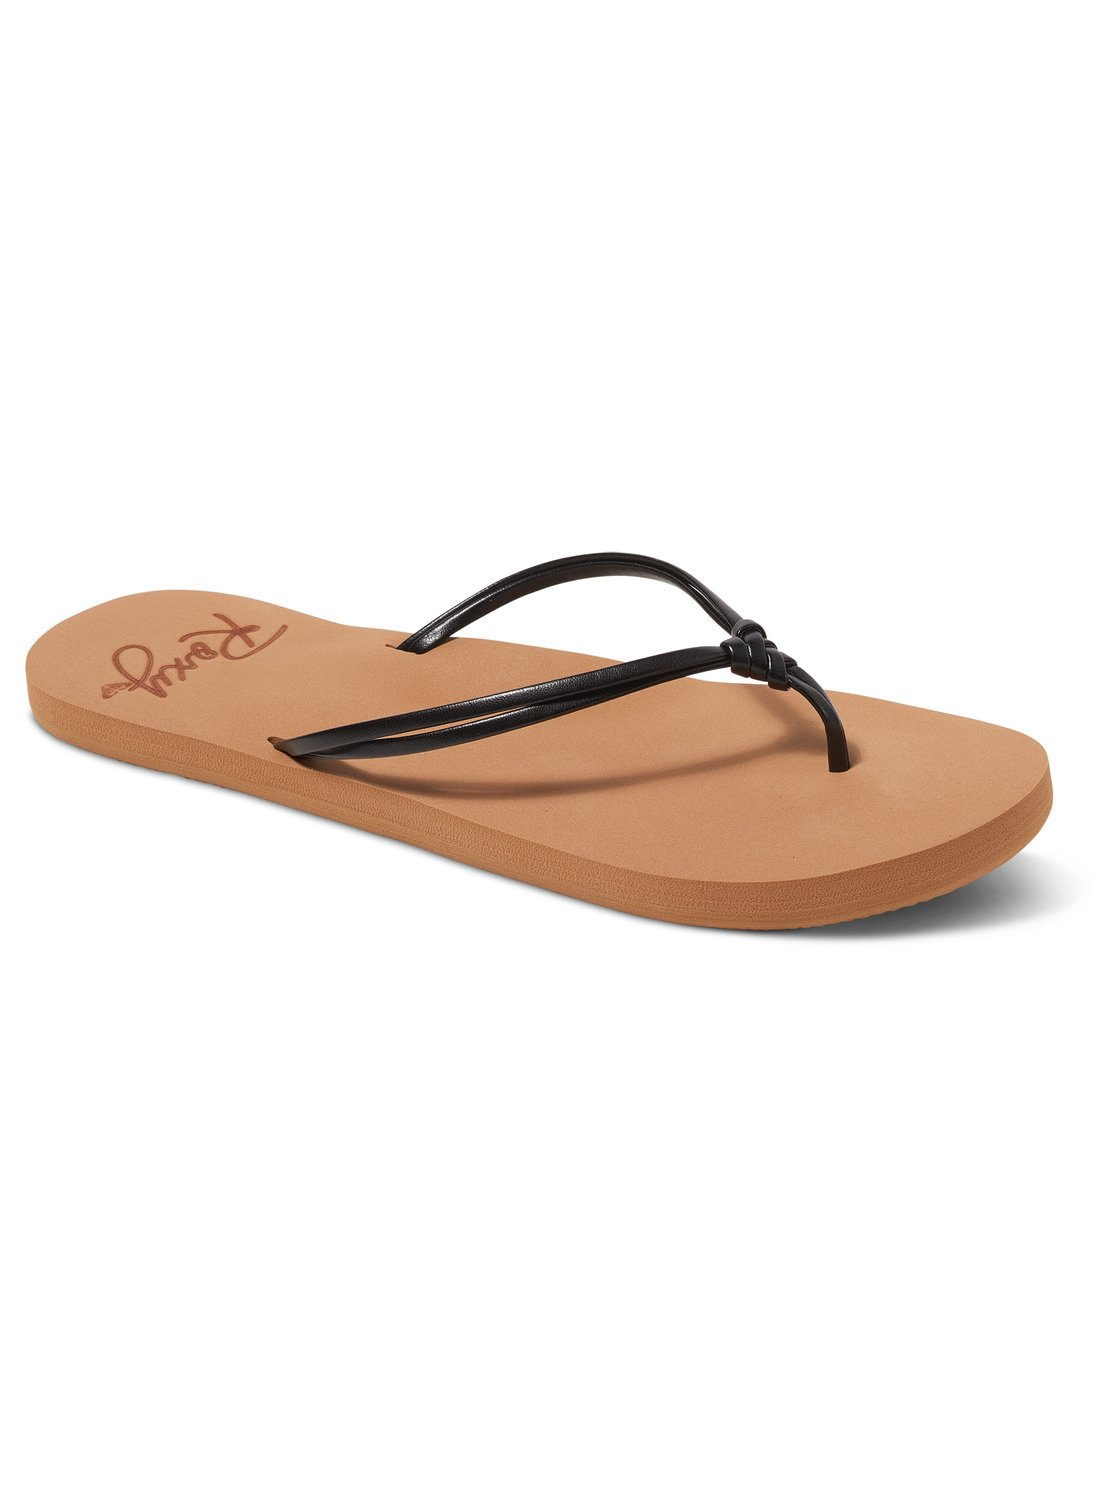 4bb40c3f218b 0 Lahaina - Sandals for Women ARJL100666 Roxy